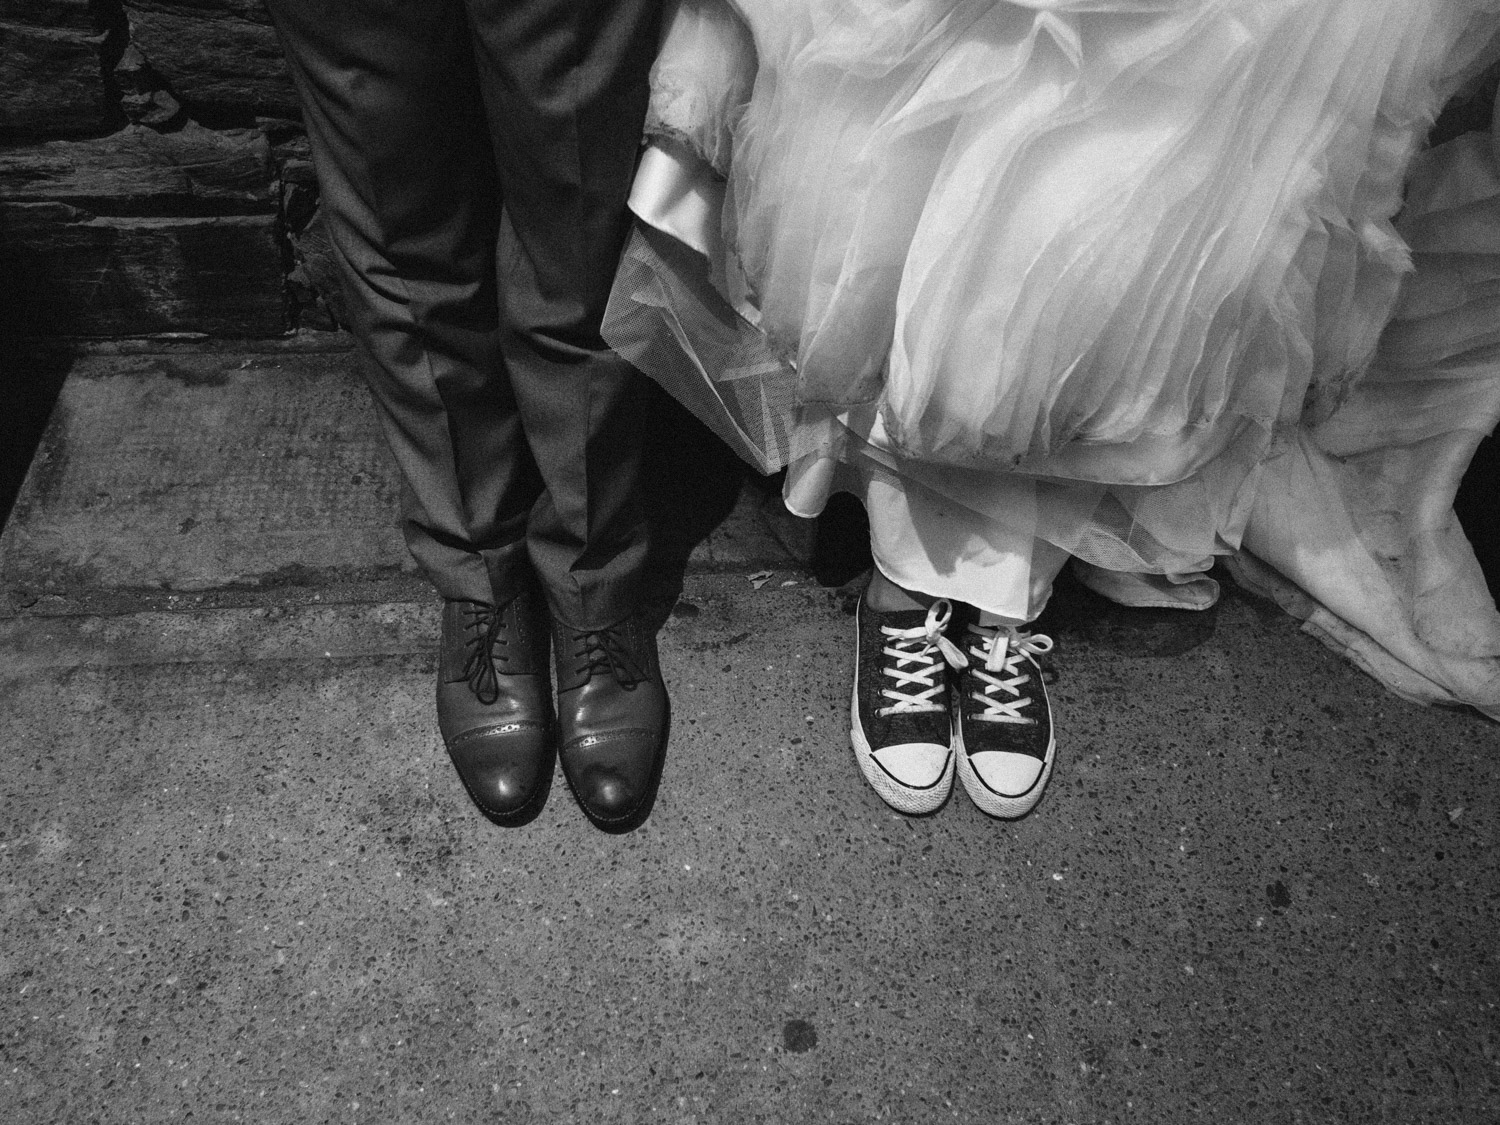 Bride and groom shoes!